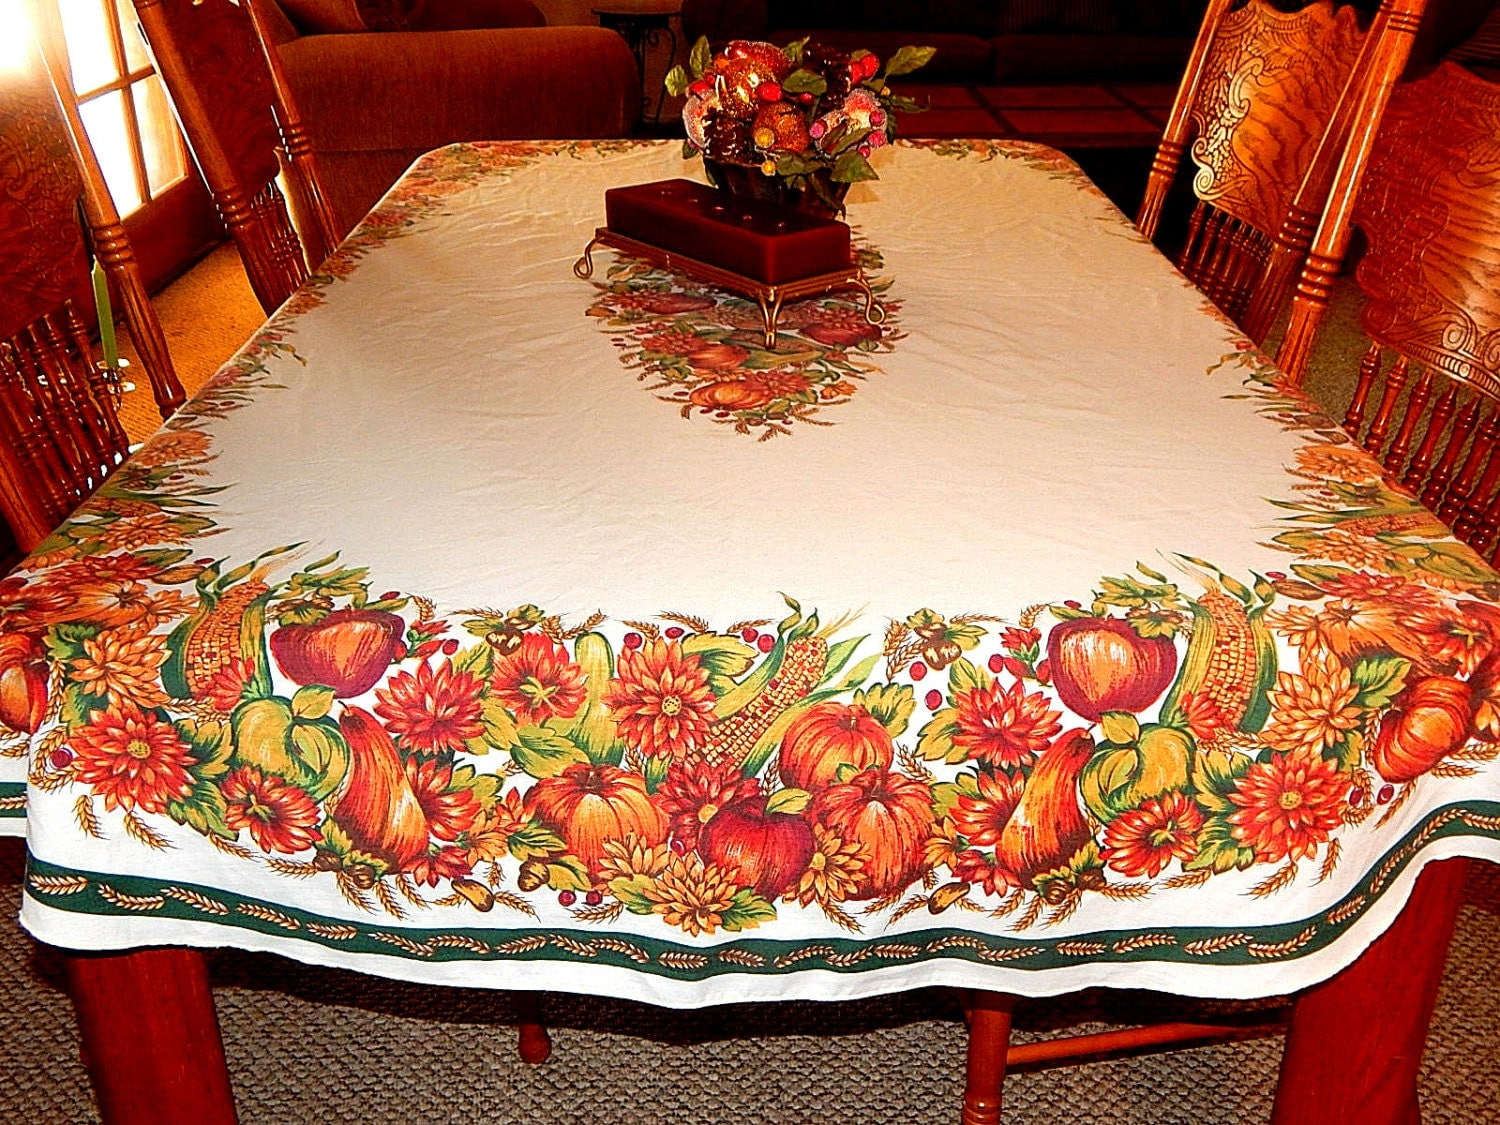 Fall Tablecloth 90 x 60 Oval Cotton Polyester